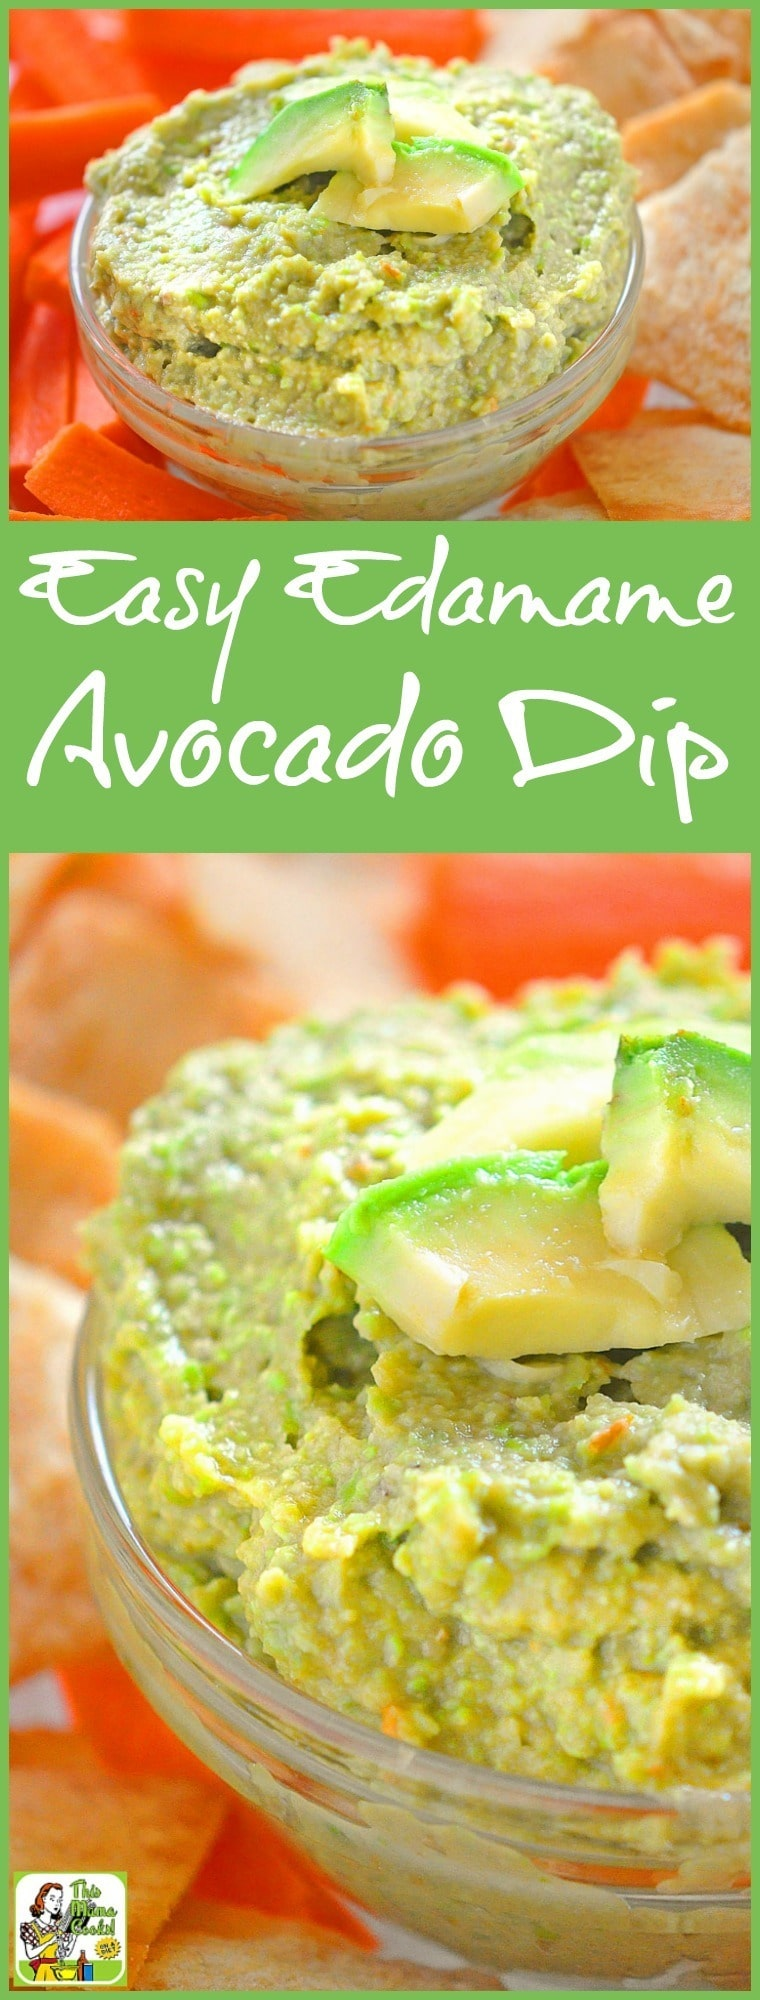 Looking for a healthy and gluten free dip recipe? Try this Easy Edamame Avocado Dip recipe! It can be made in just a few minutes in your food processor or high speed blender.